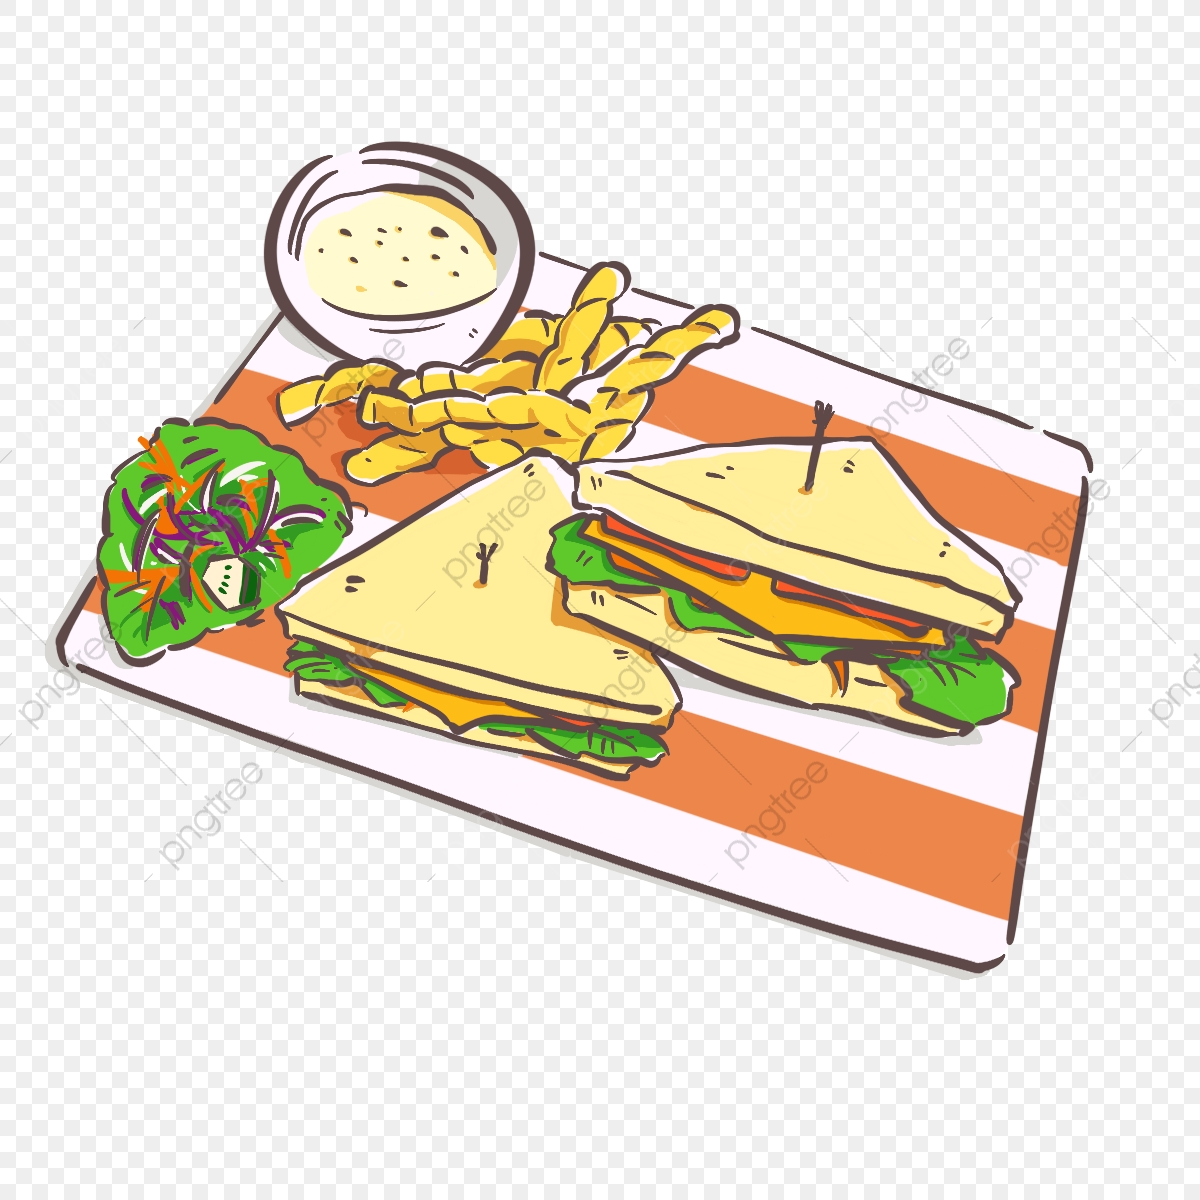 With chips and salad. Sandwich clipart sandwich chip